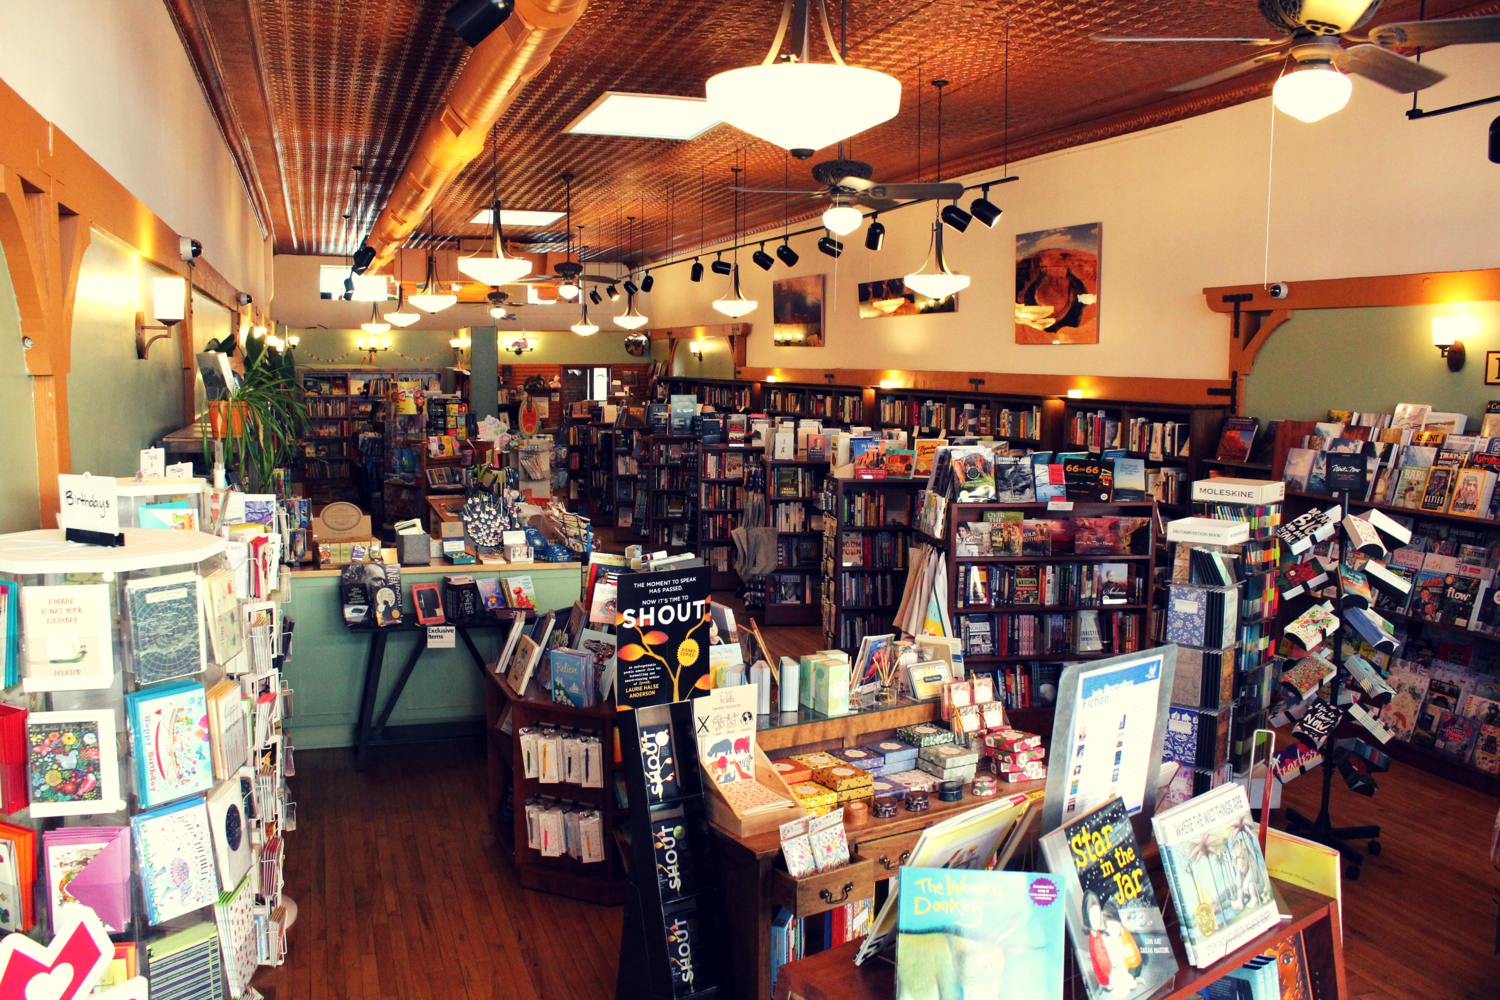 About — Bright Side Bookshop